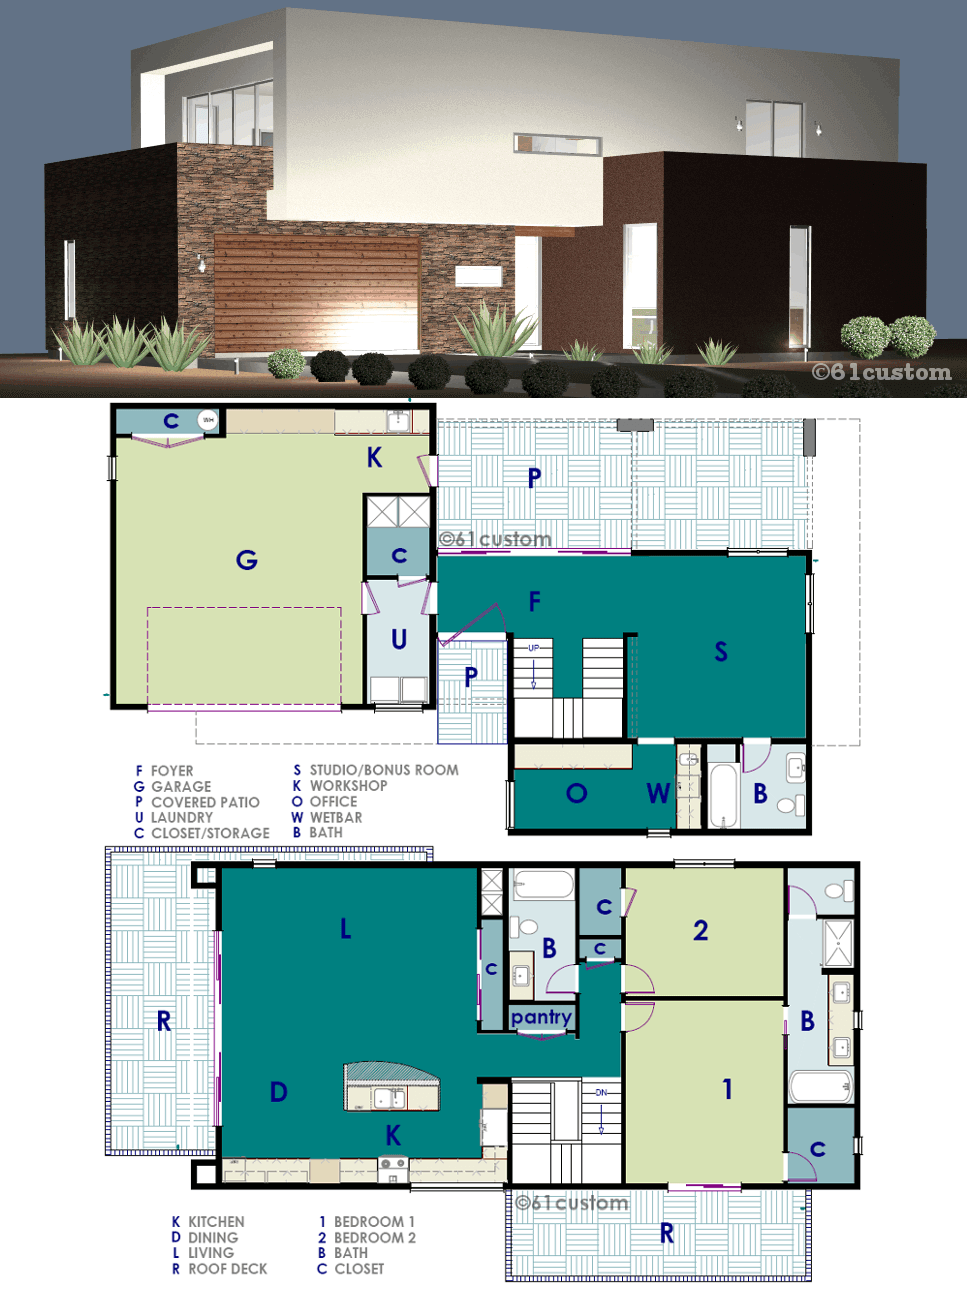 modern live-work house plan | 61custom